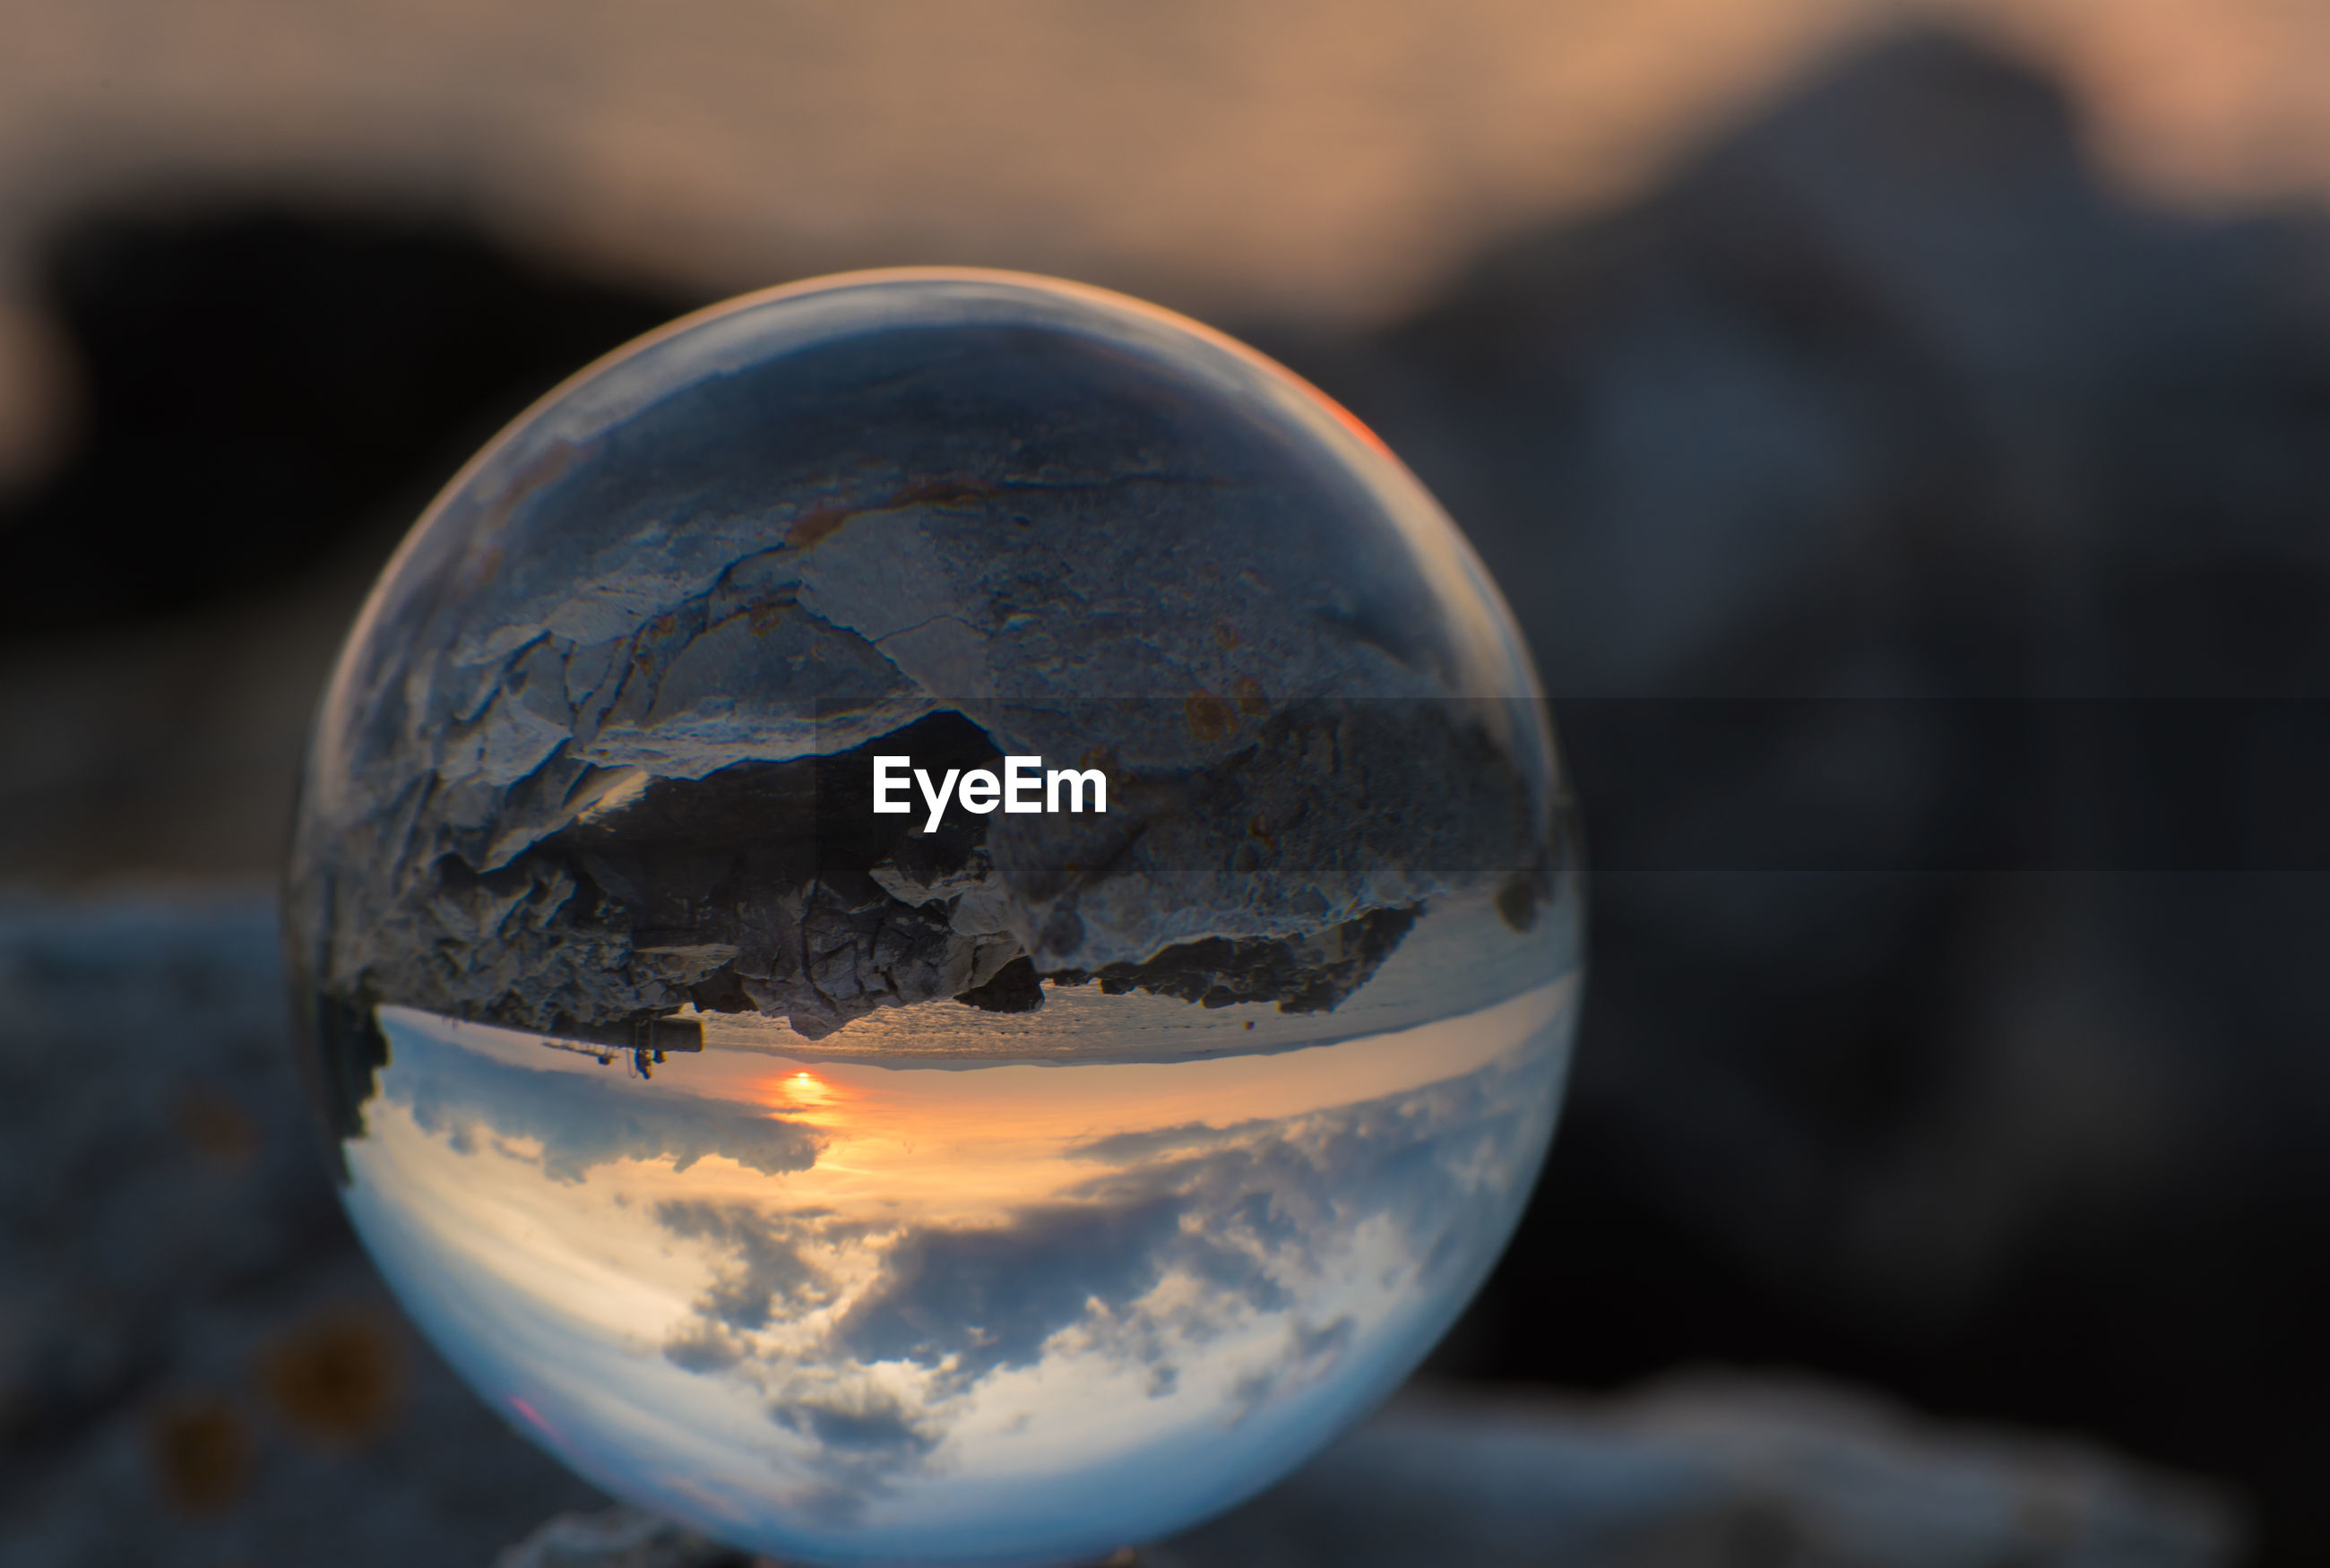 UPSIDE DOWN IMAGE OF CRYSTAL BALL